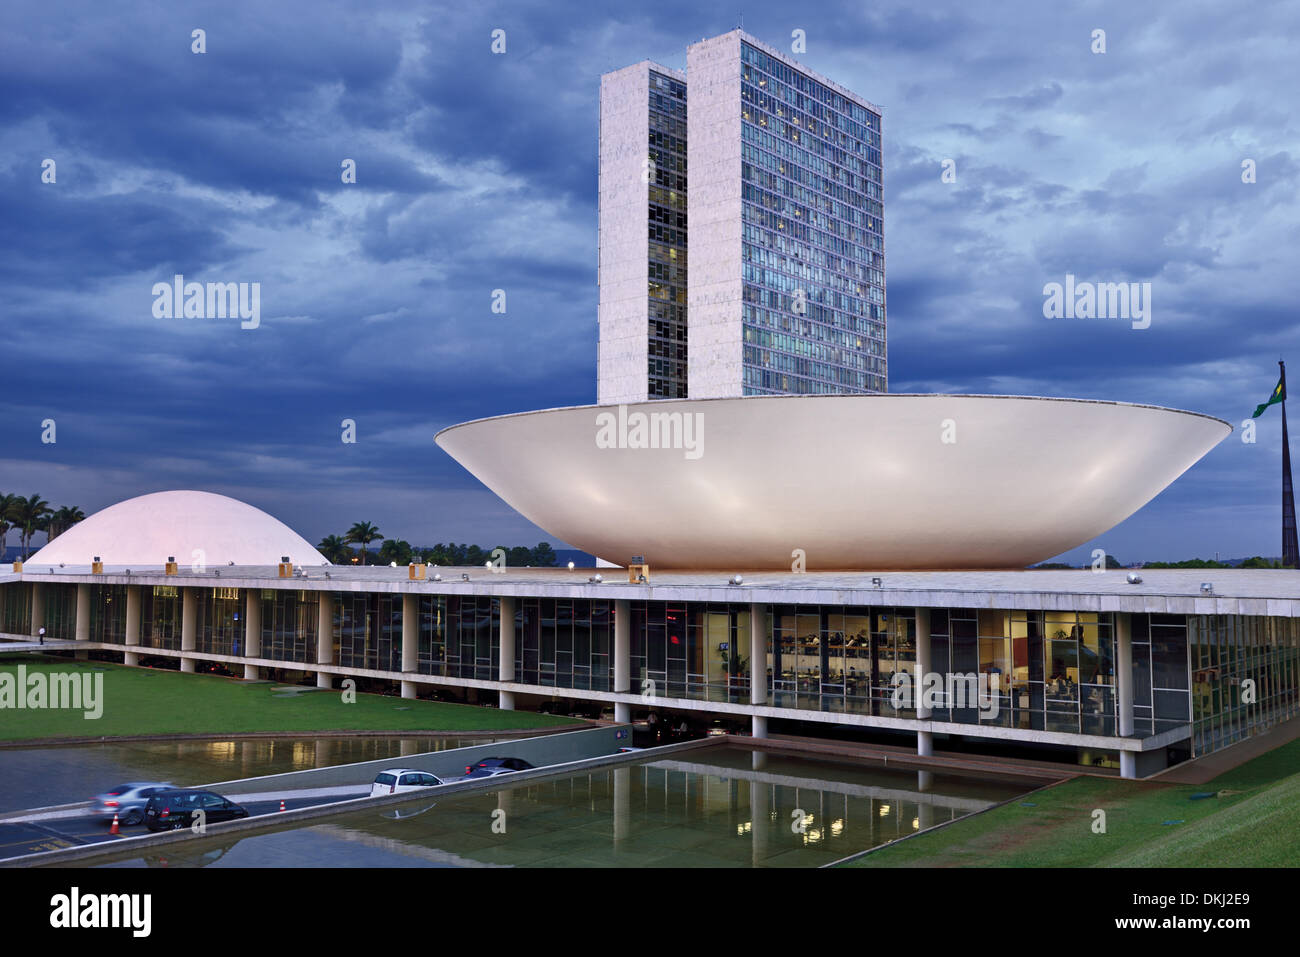 Brazil brasilia national congress senate chamber of deputies stock photo 63706673 alamy - Arquitecto de brasilia ...